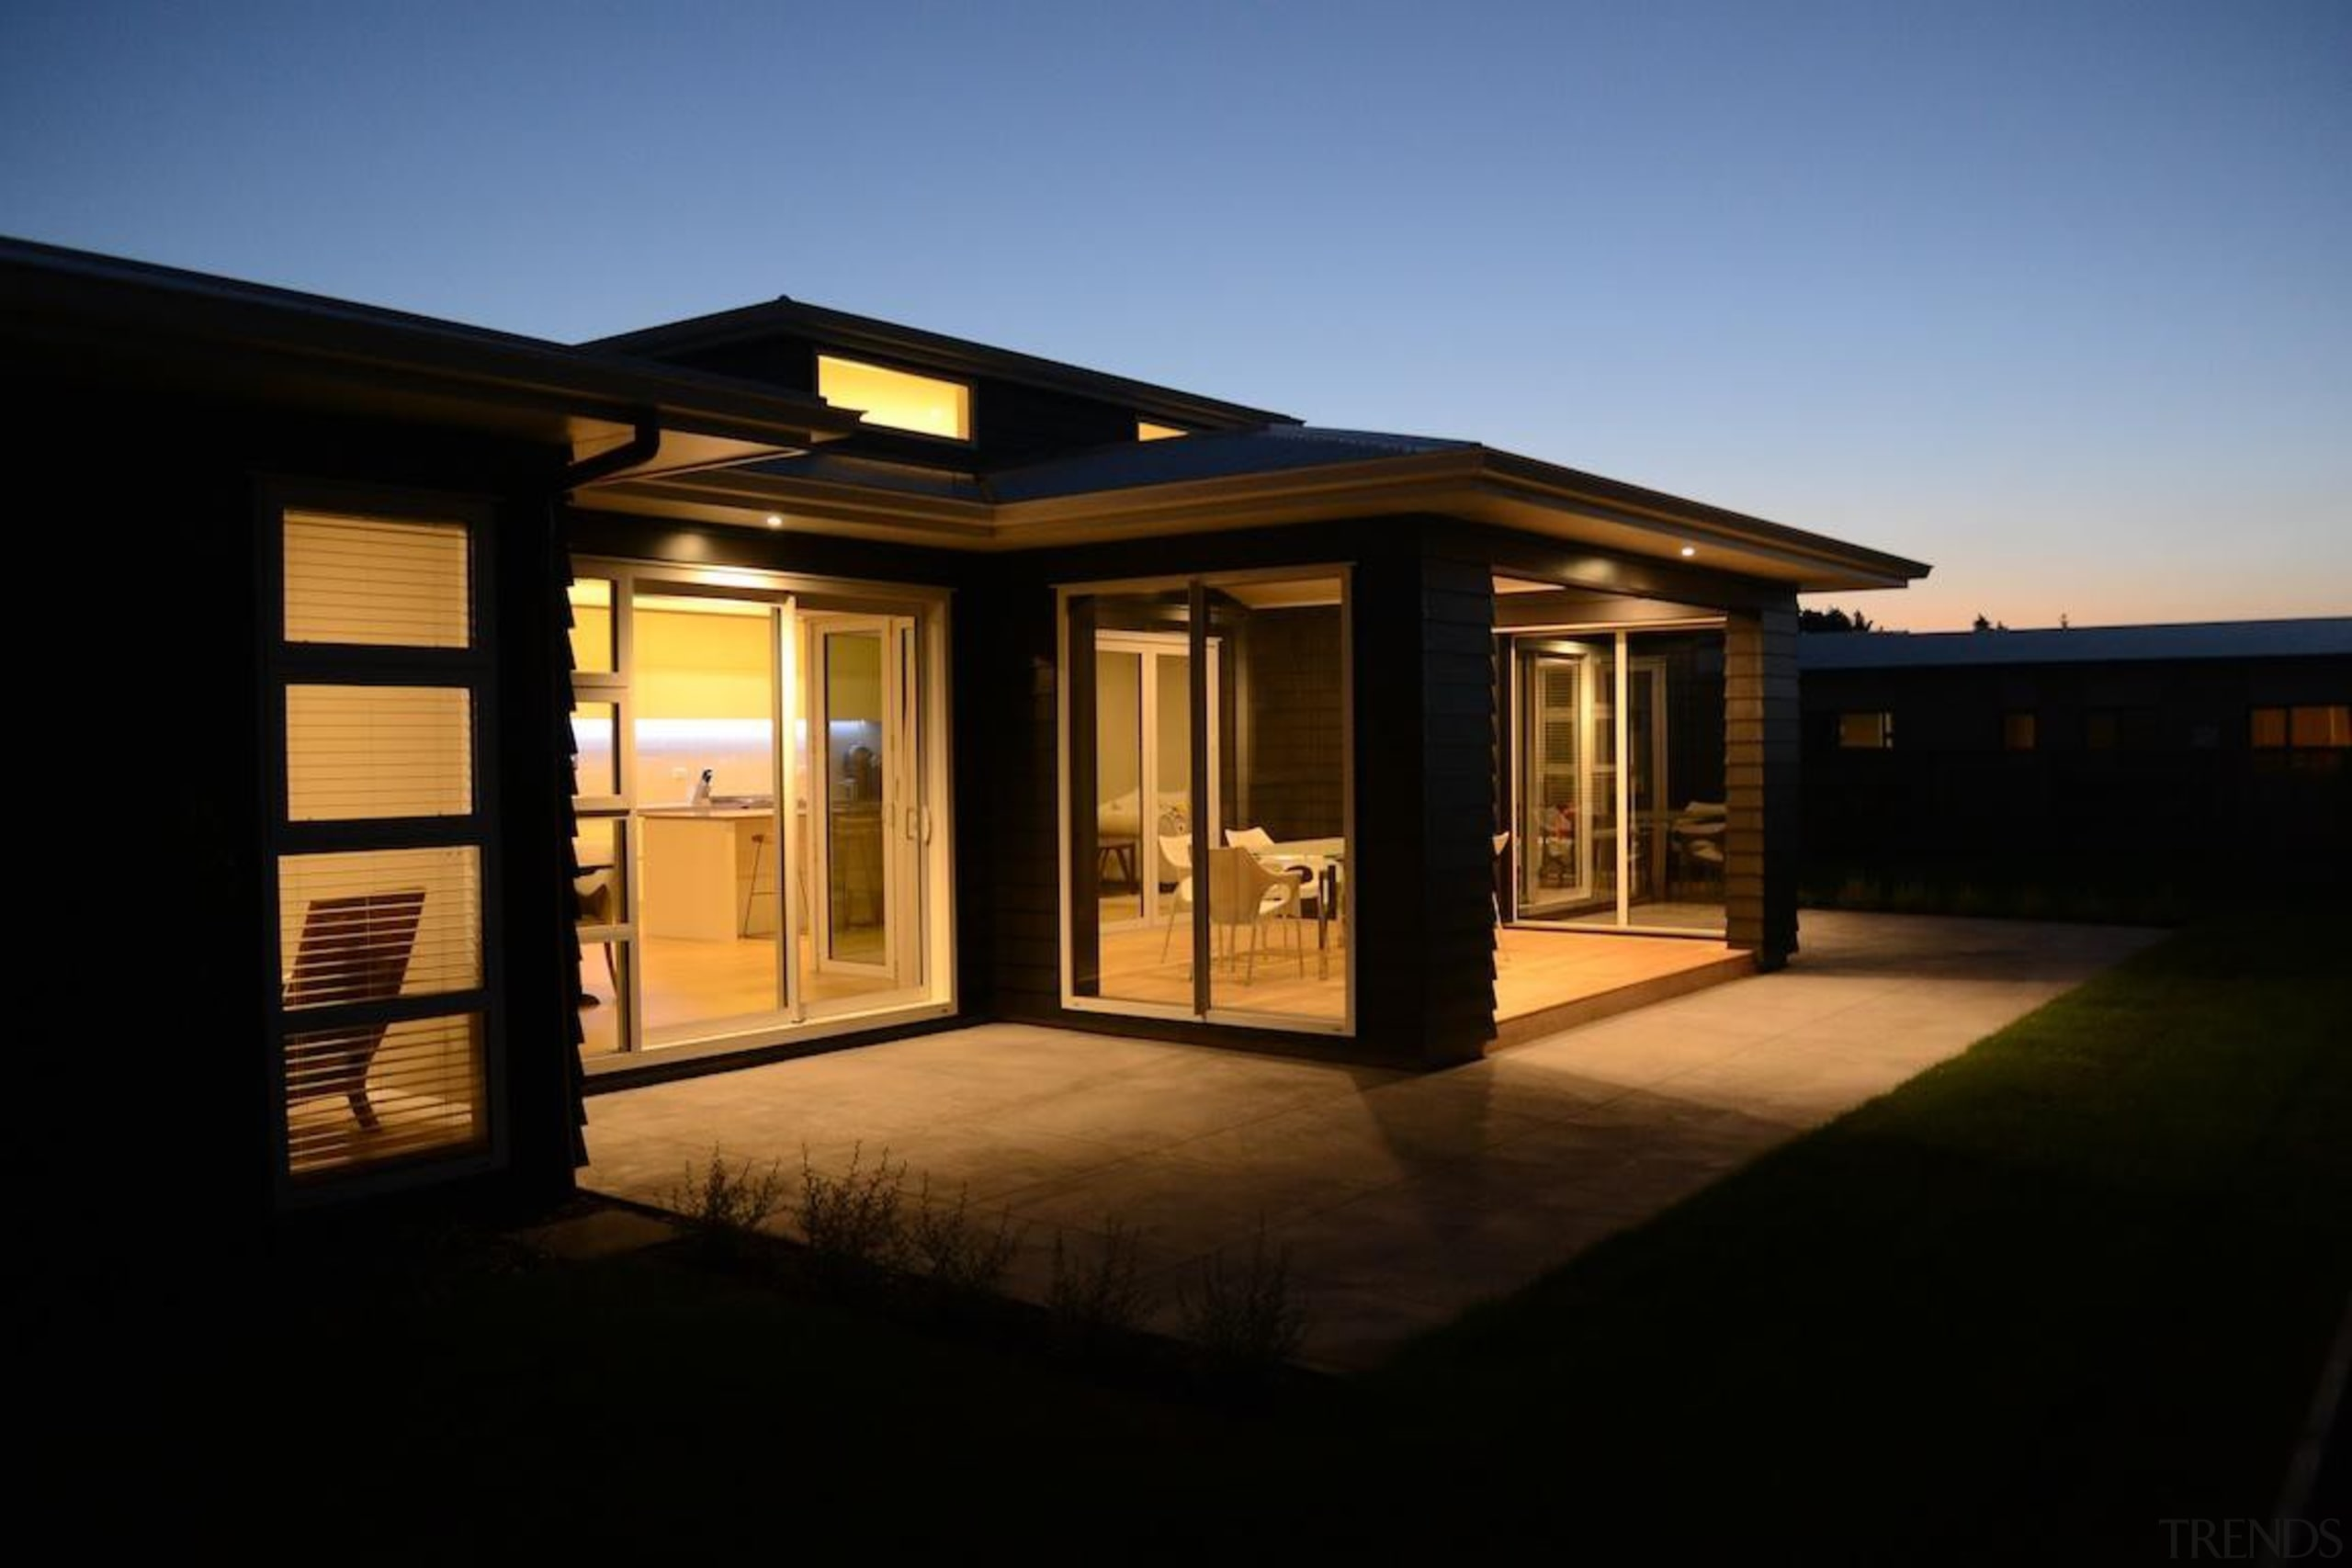 This ever so practical layout with fantastic indoor estate, evening, facade, home, house, lighting, property, real estate, residential area, shed, sky, window, black